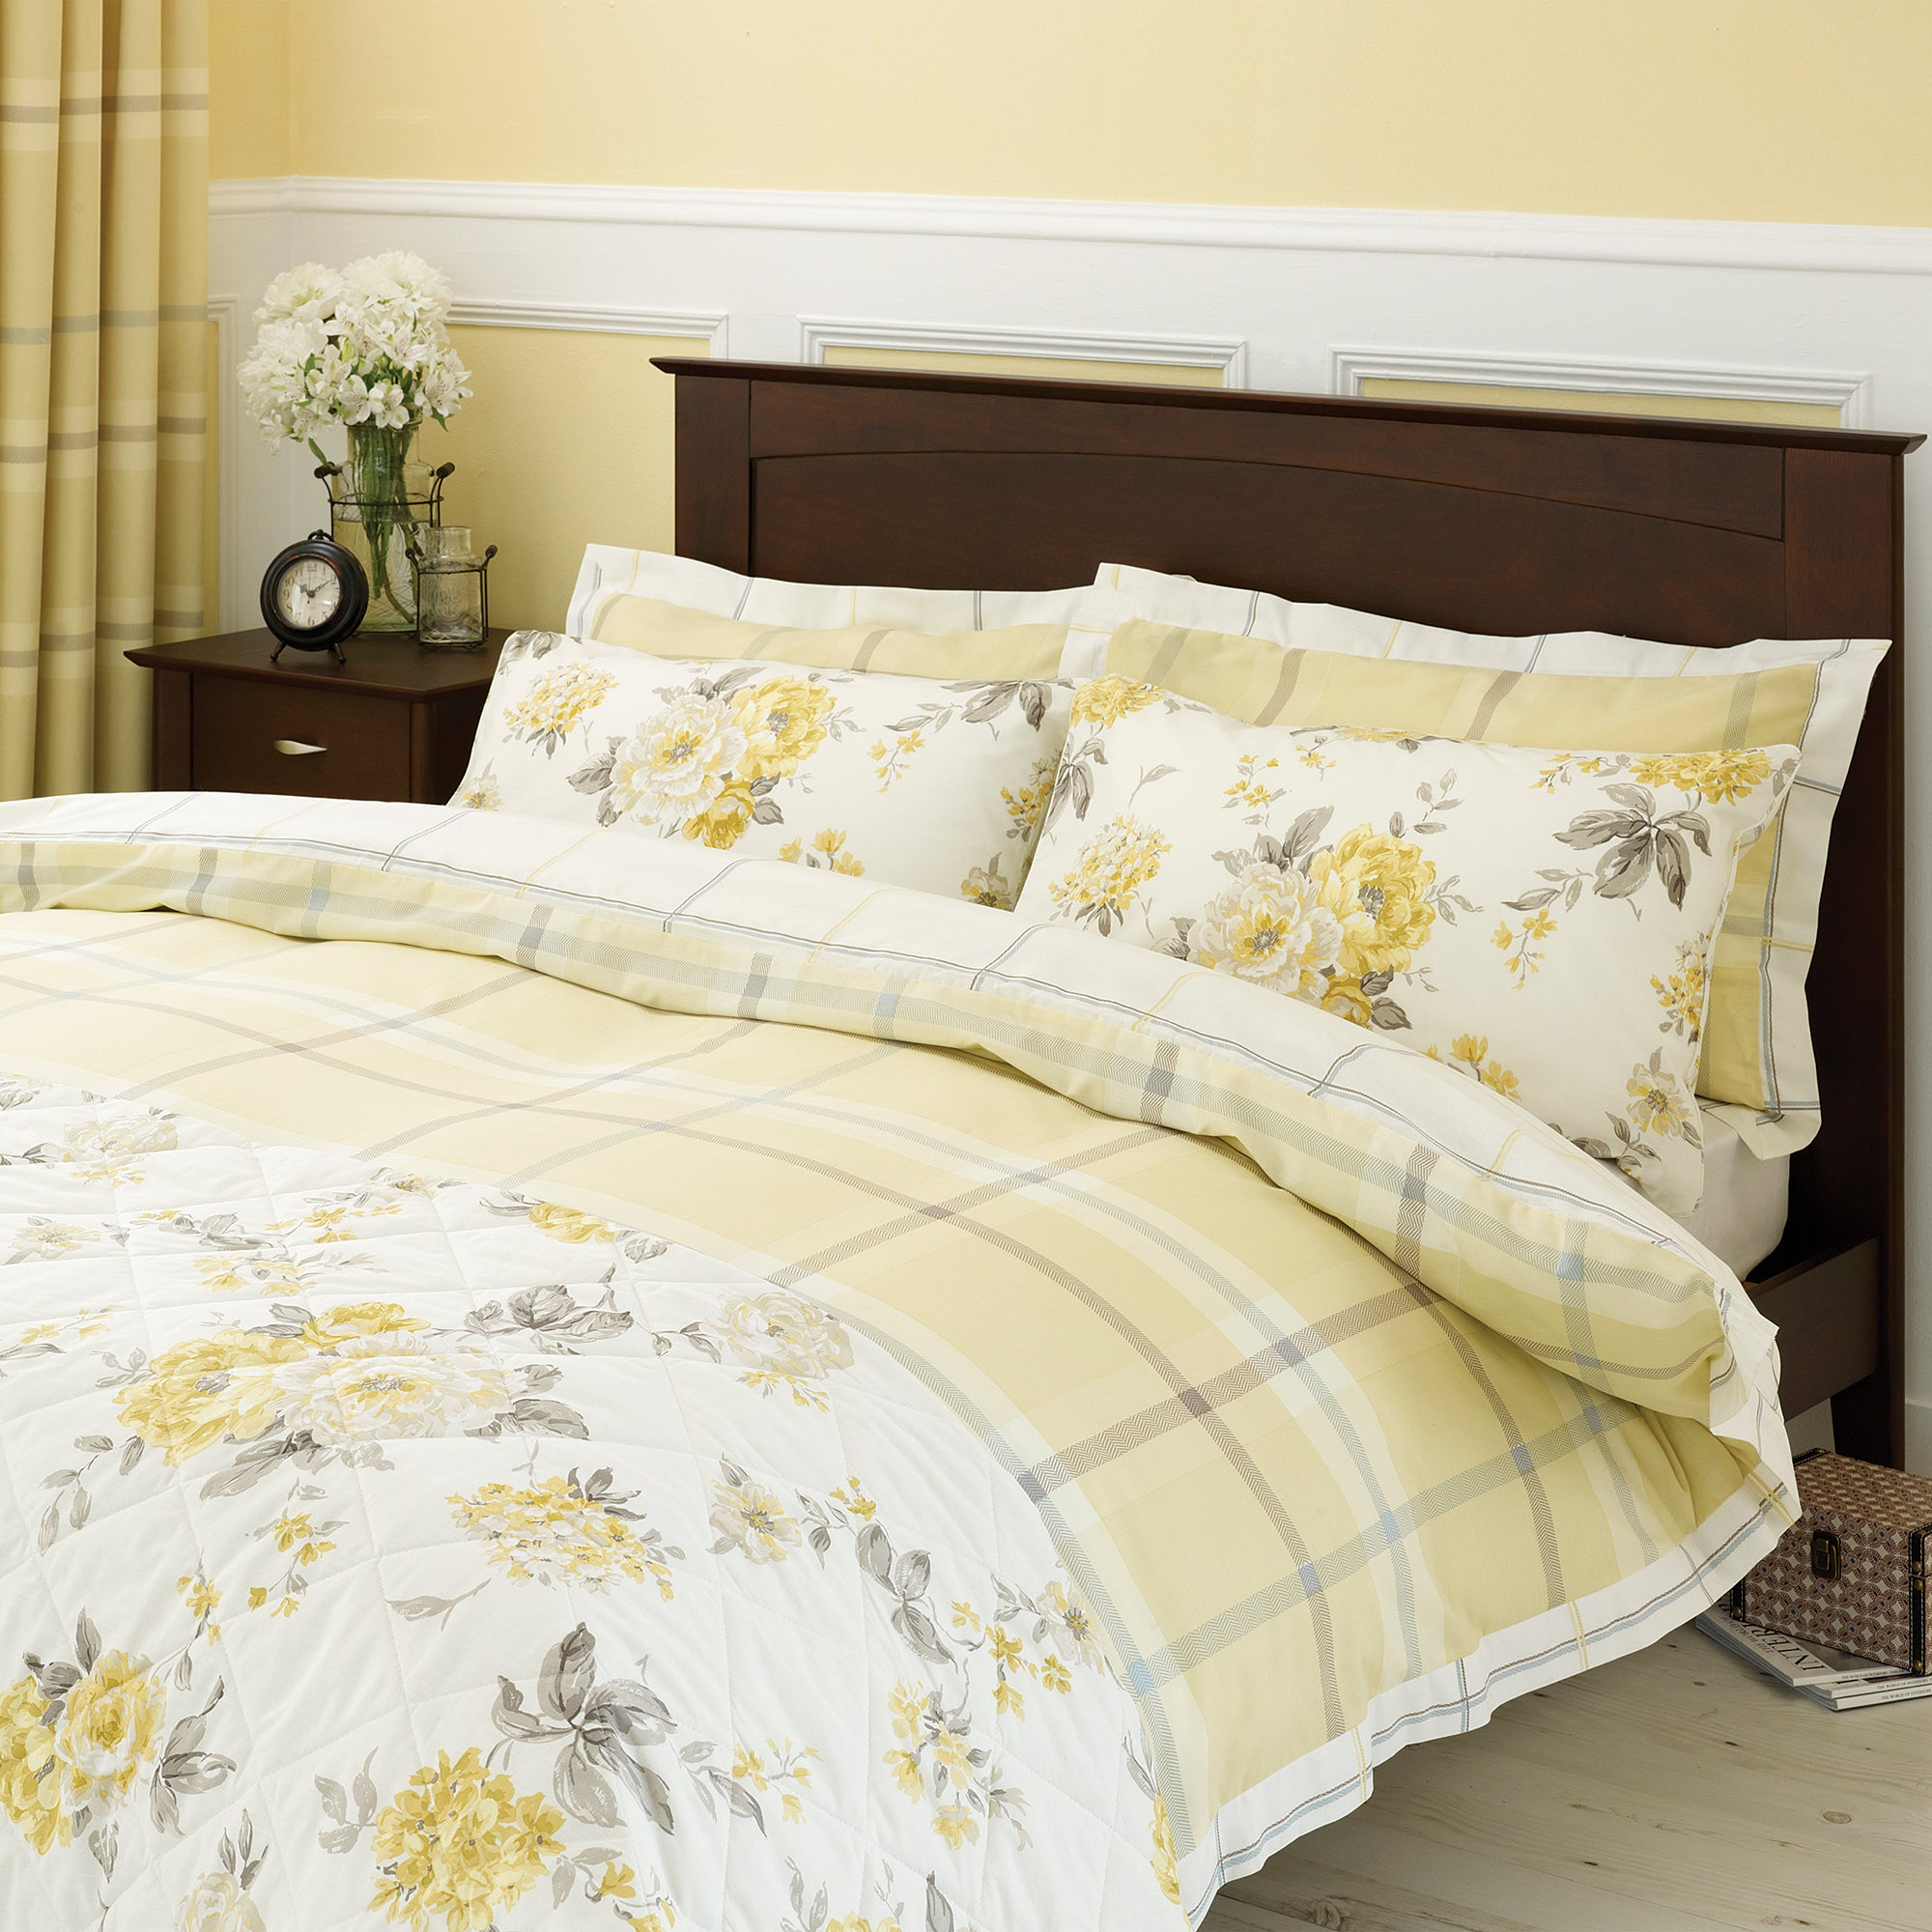 Lemon Colonial Check Bedlinen Collection